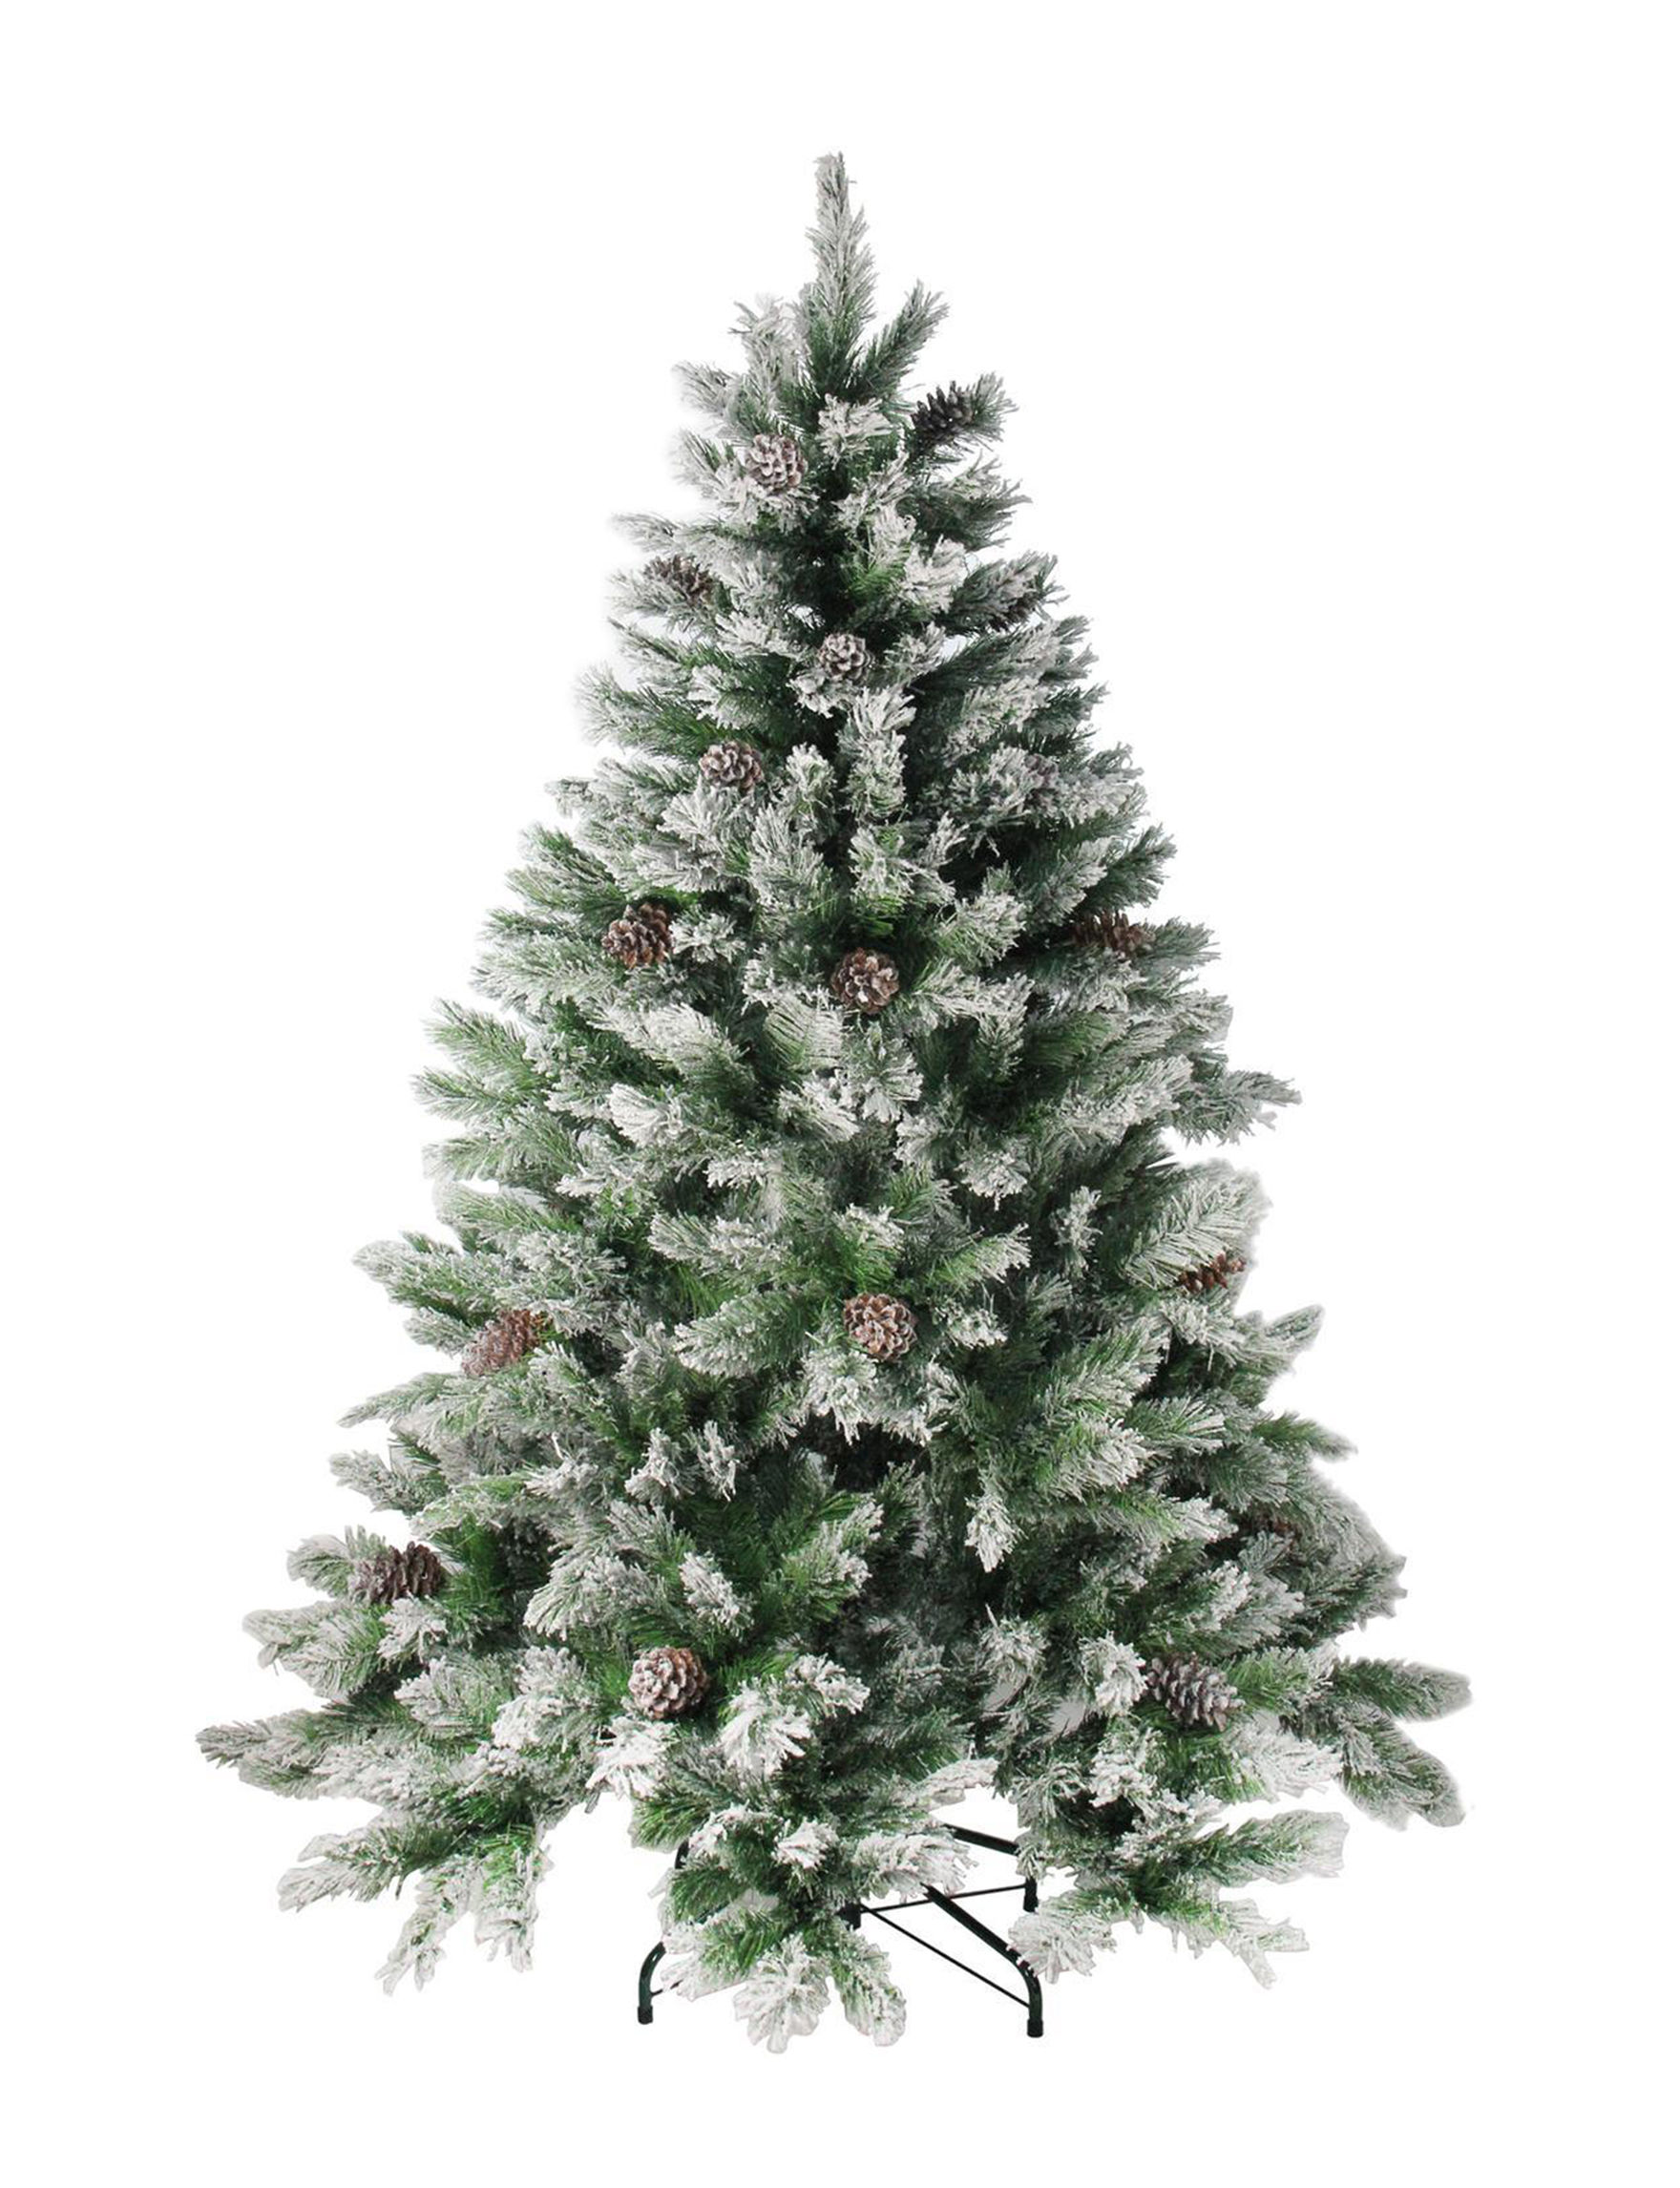 Northlight Green / White Christmas Trees Decorative Objects Holiday Decor Home Accents